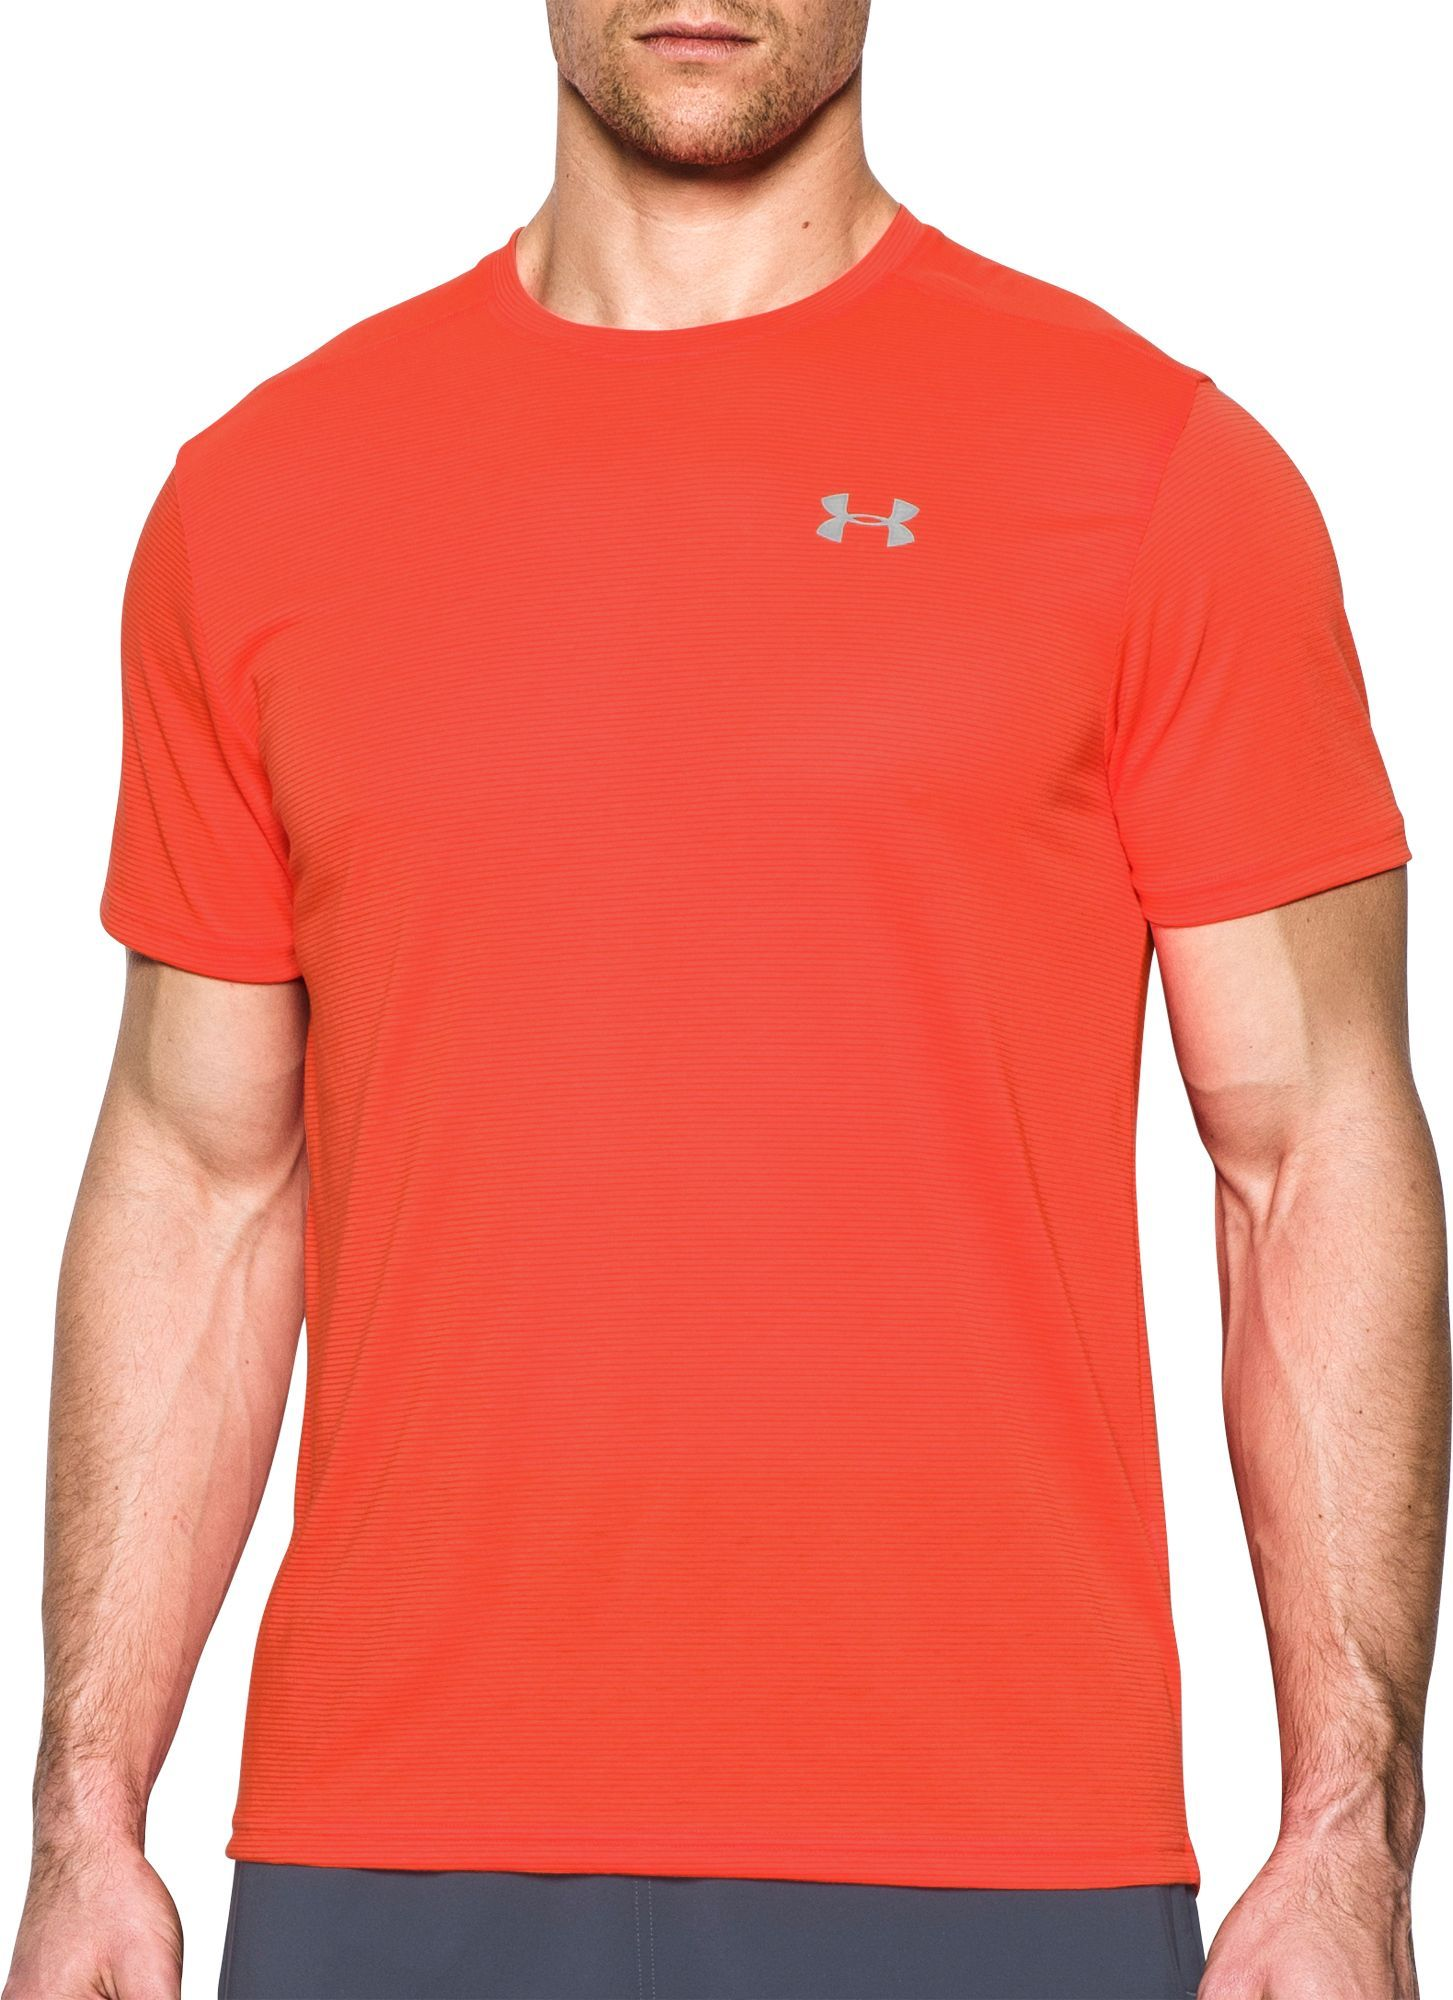 c88d87d6475 Under Armour Men s Threadborne Streaker T-Shirt